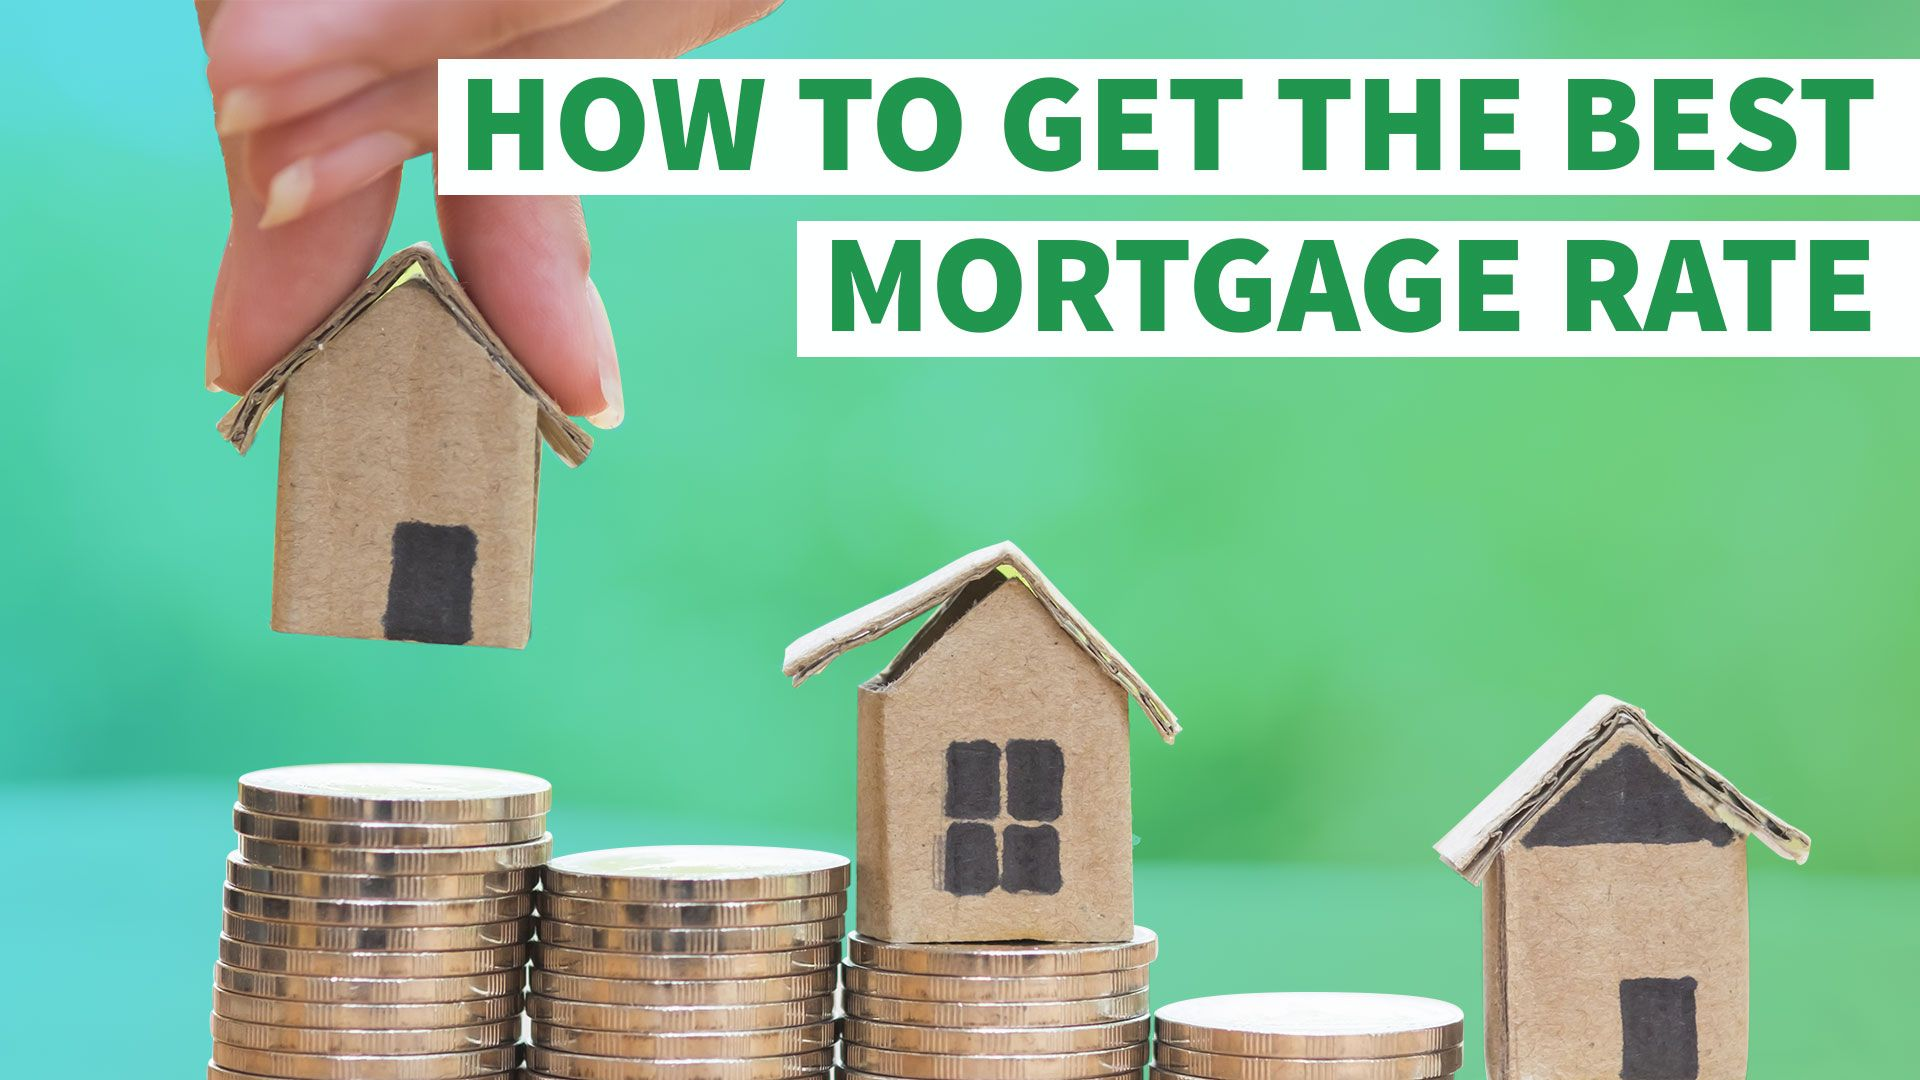 4 Easy Things to Do to Get the Best Mortgage Rates in Houston